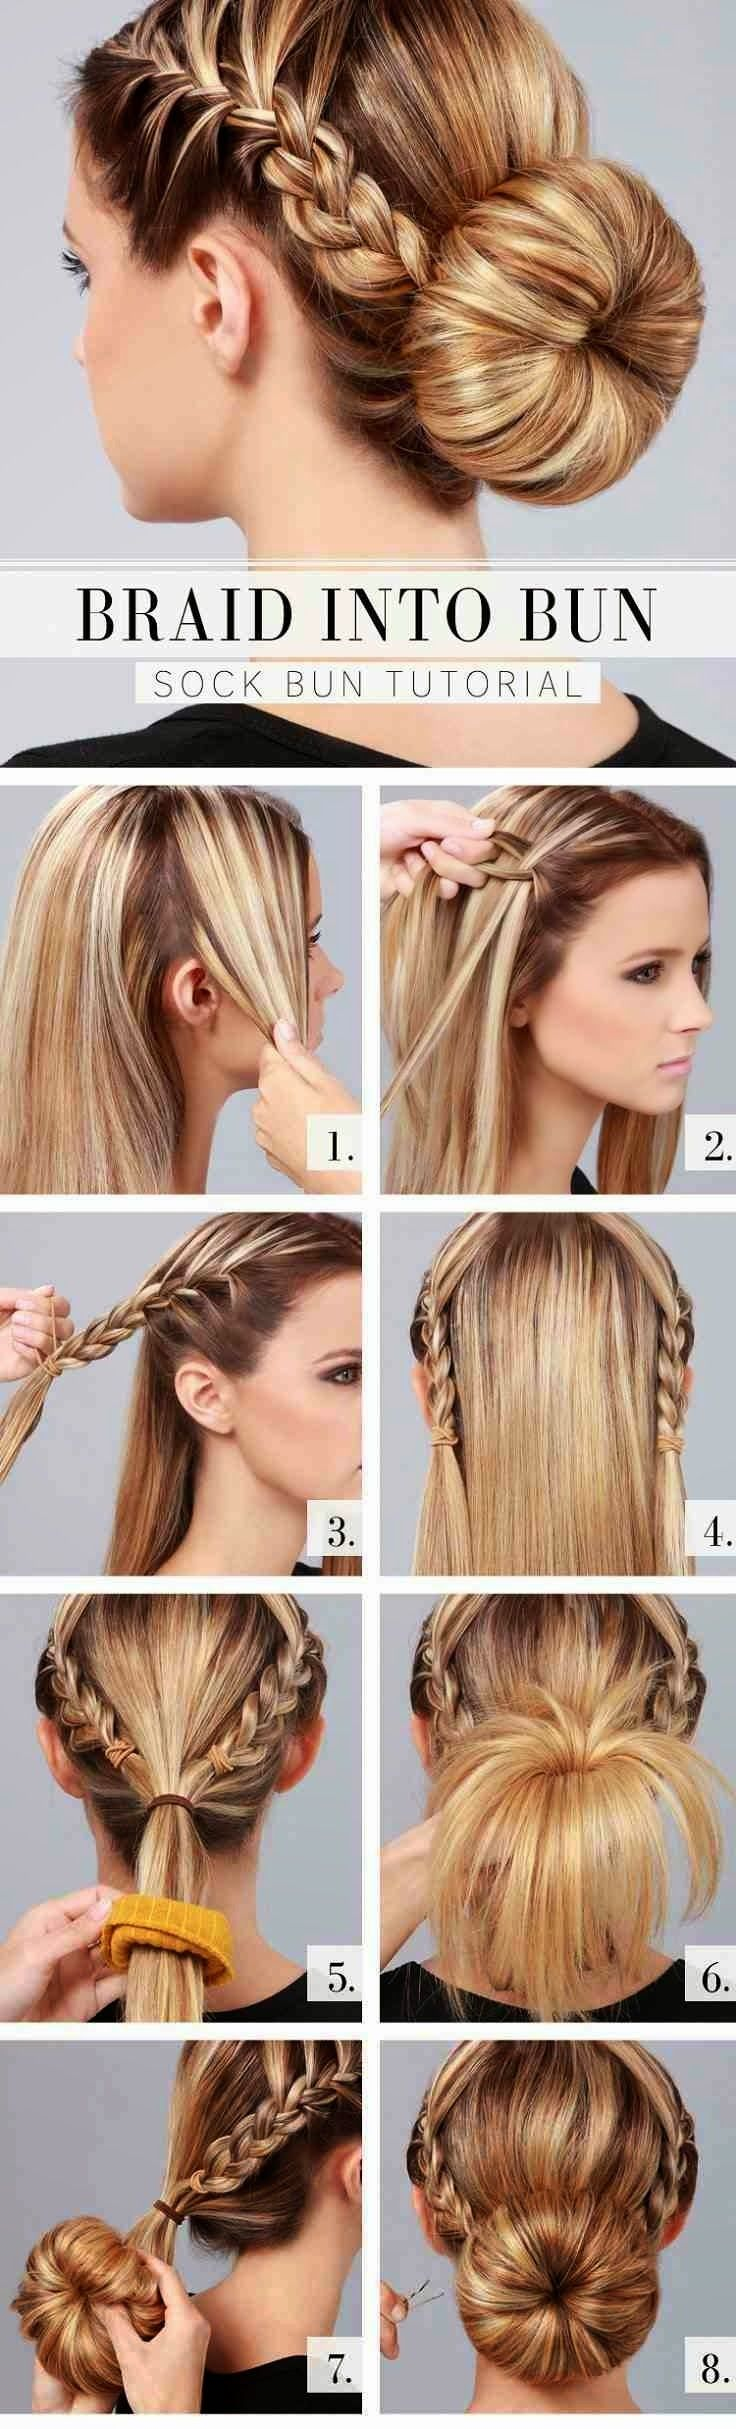 best Hairstylz I Love images on Pinterest Hairstyle ideas Hair